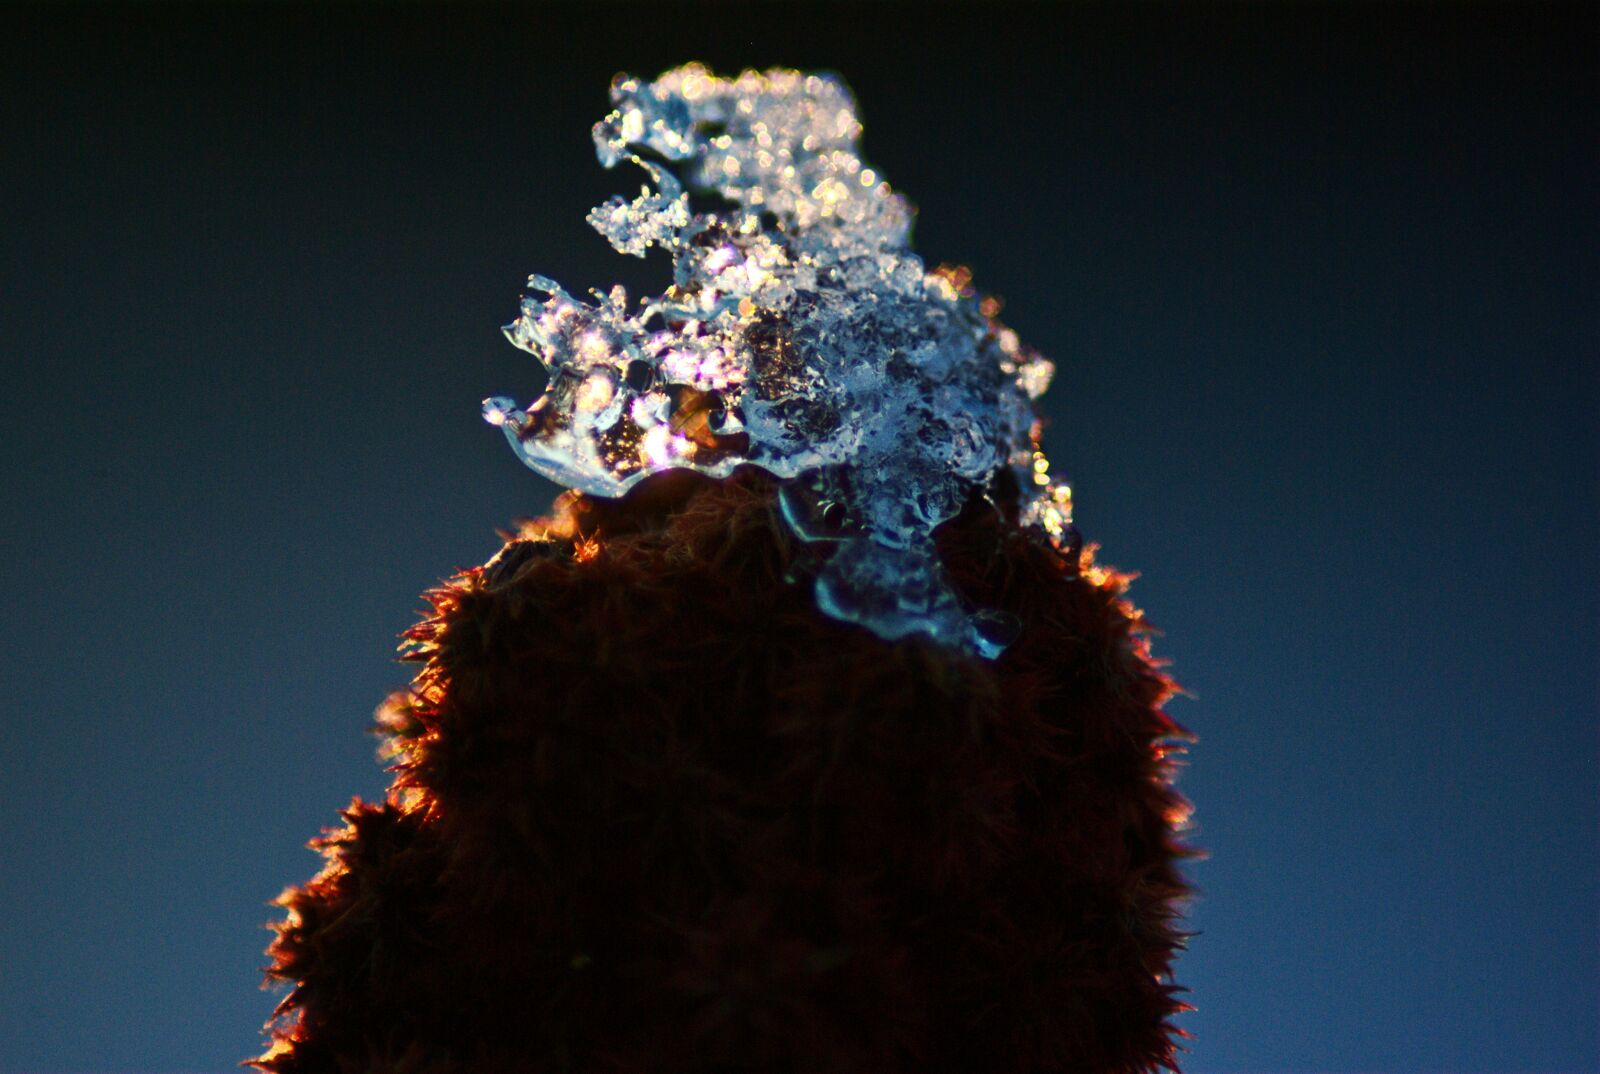 """Pentax K10D sample photo. """"Crystals, ice, flower"""" photography"""